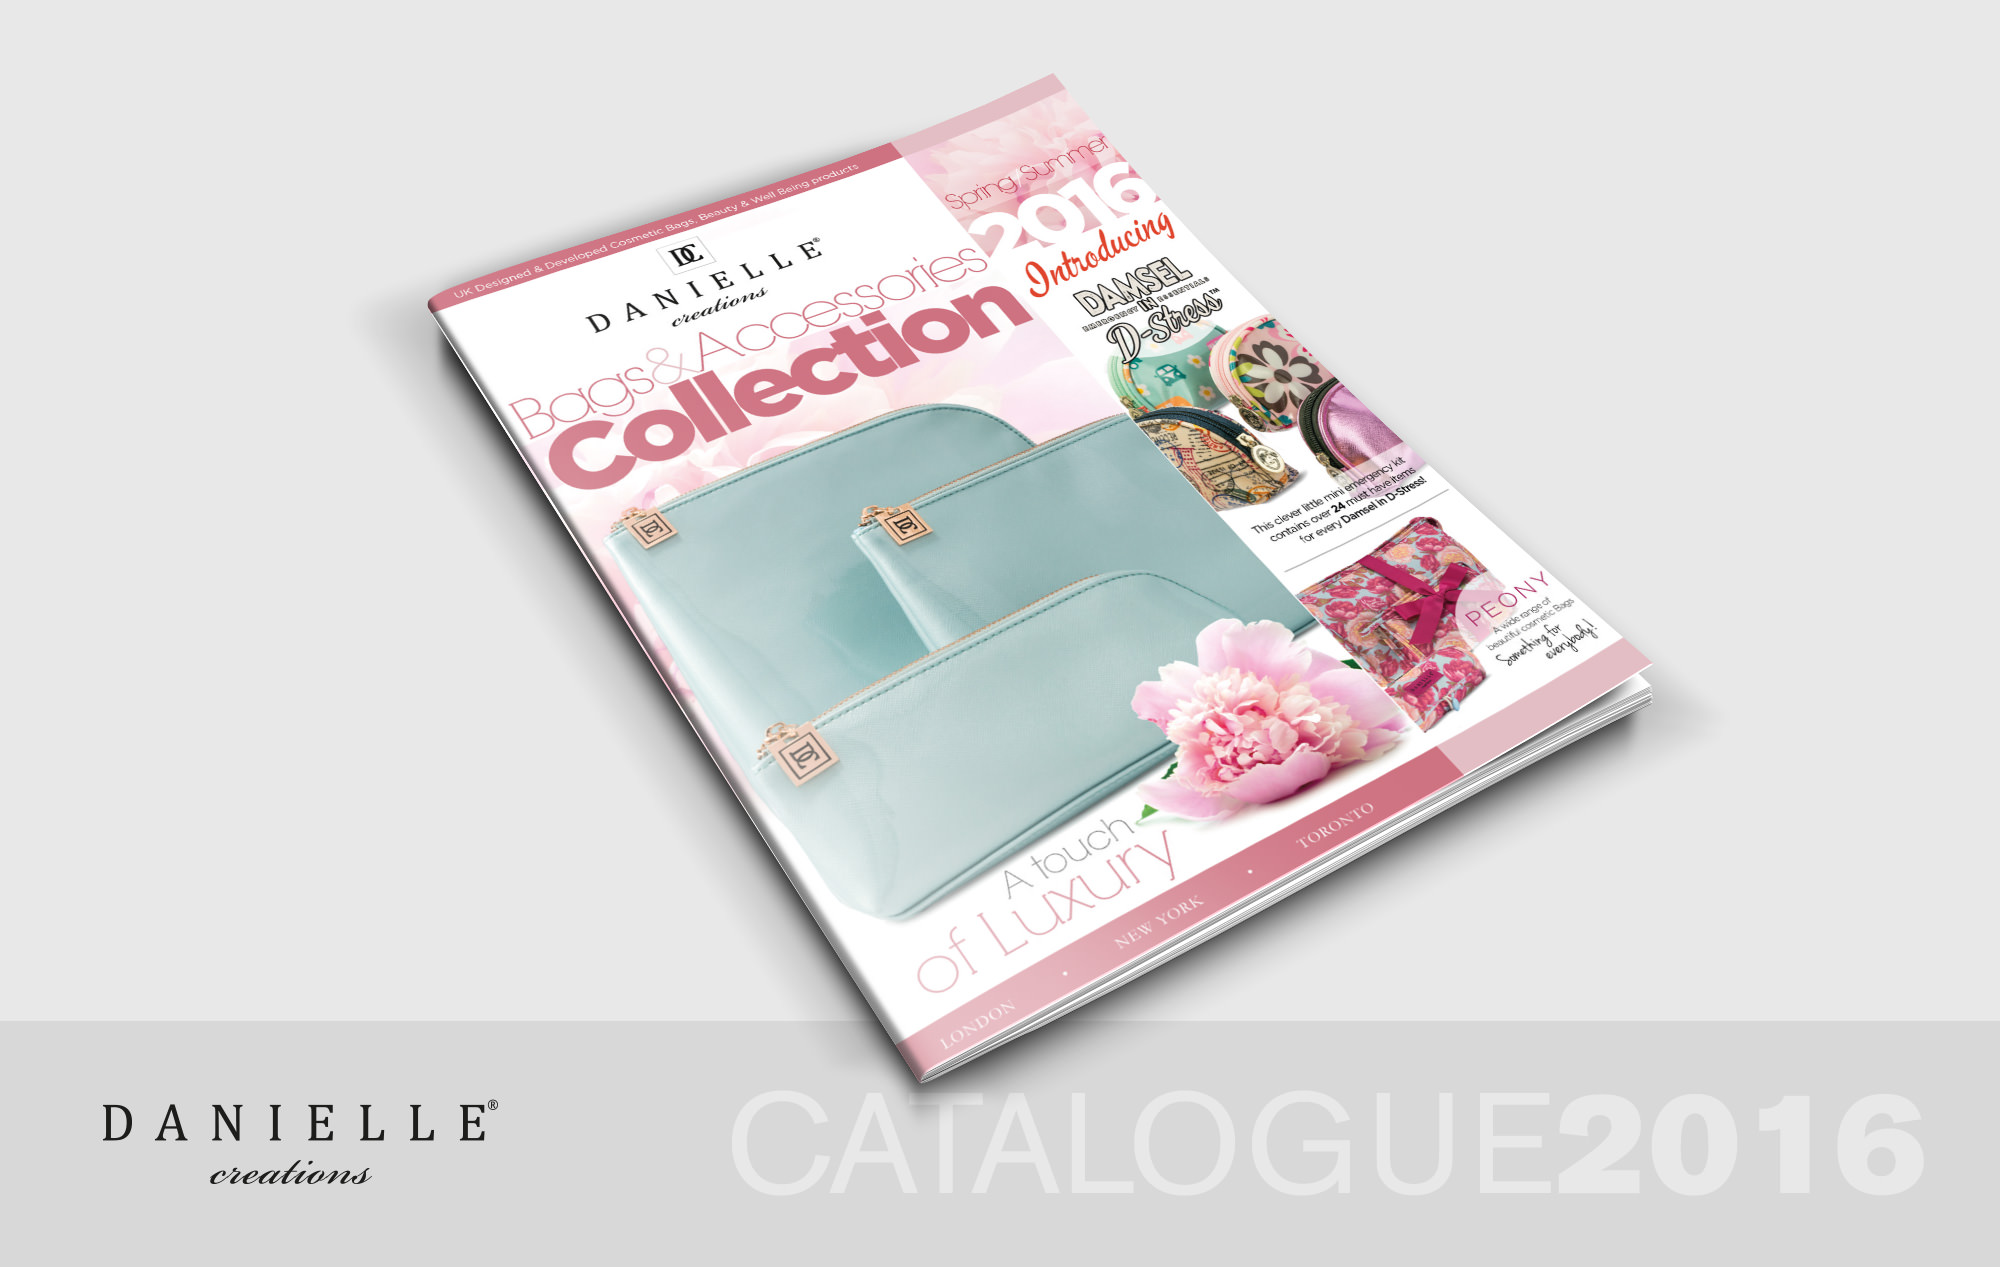 Catalogue Design Essex Agency - Creative Pixel Agency